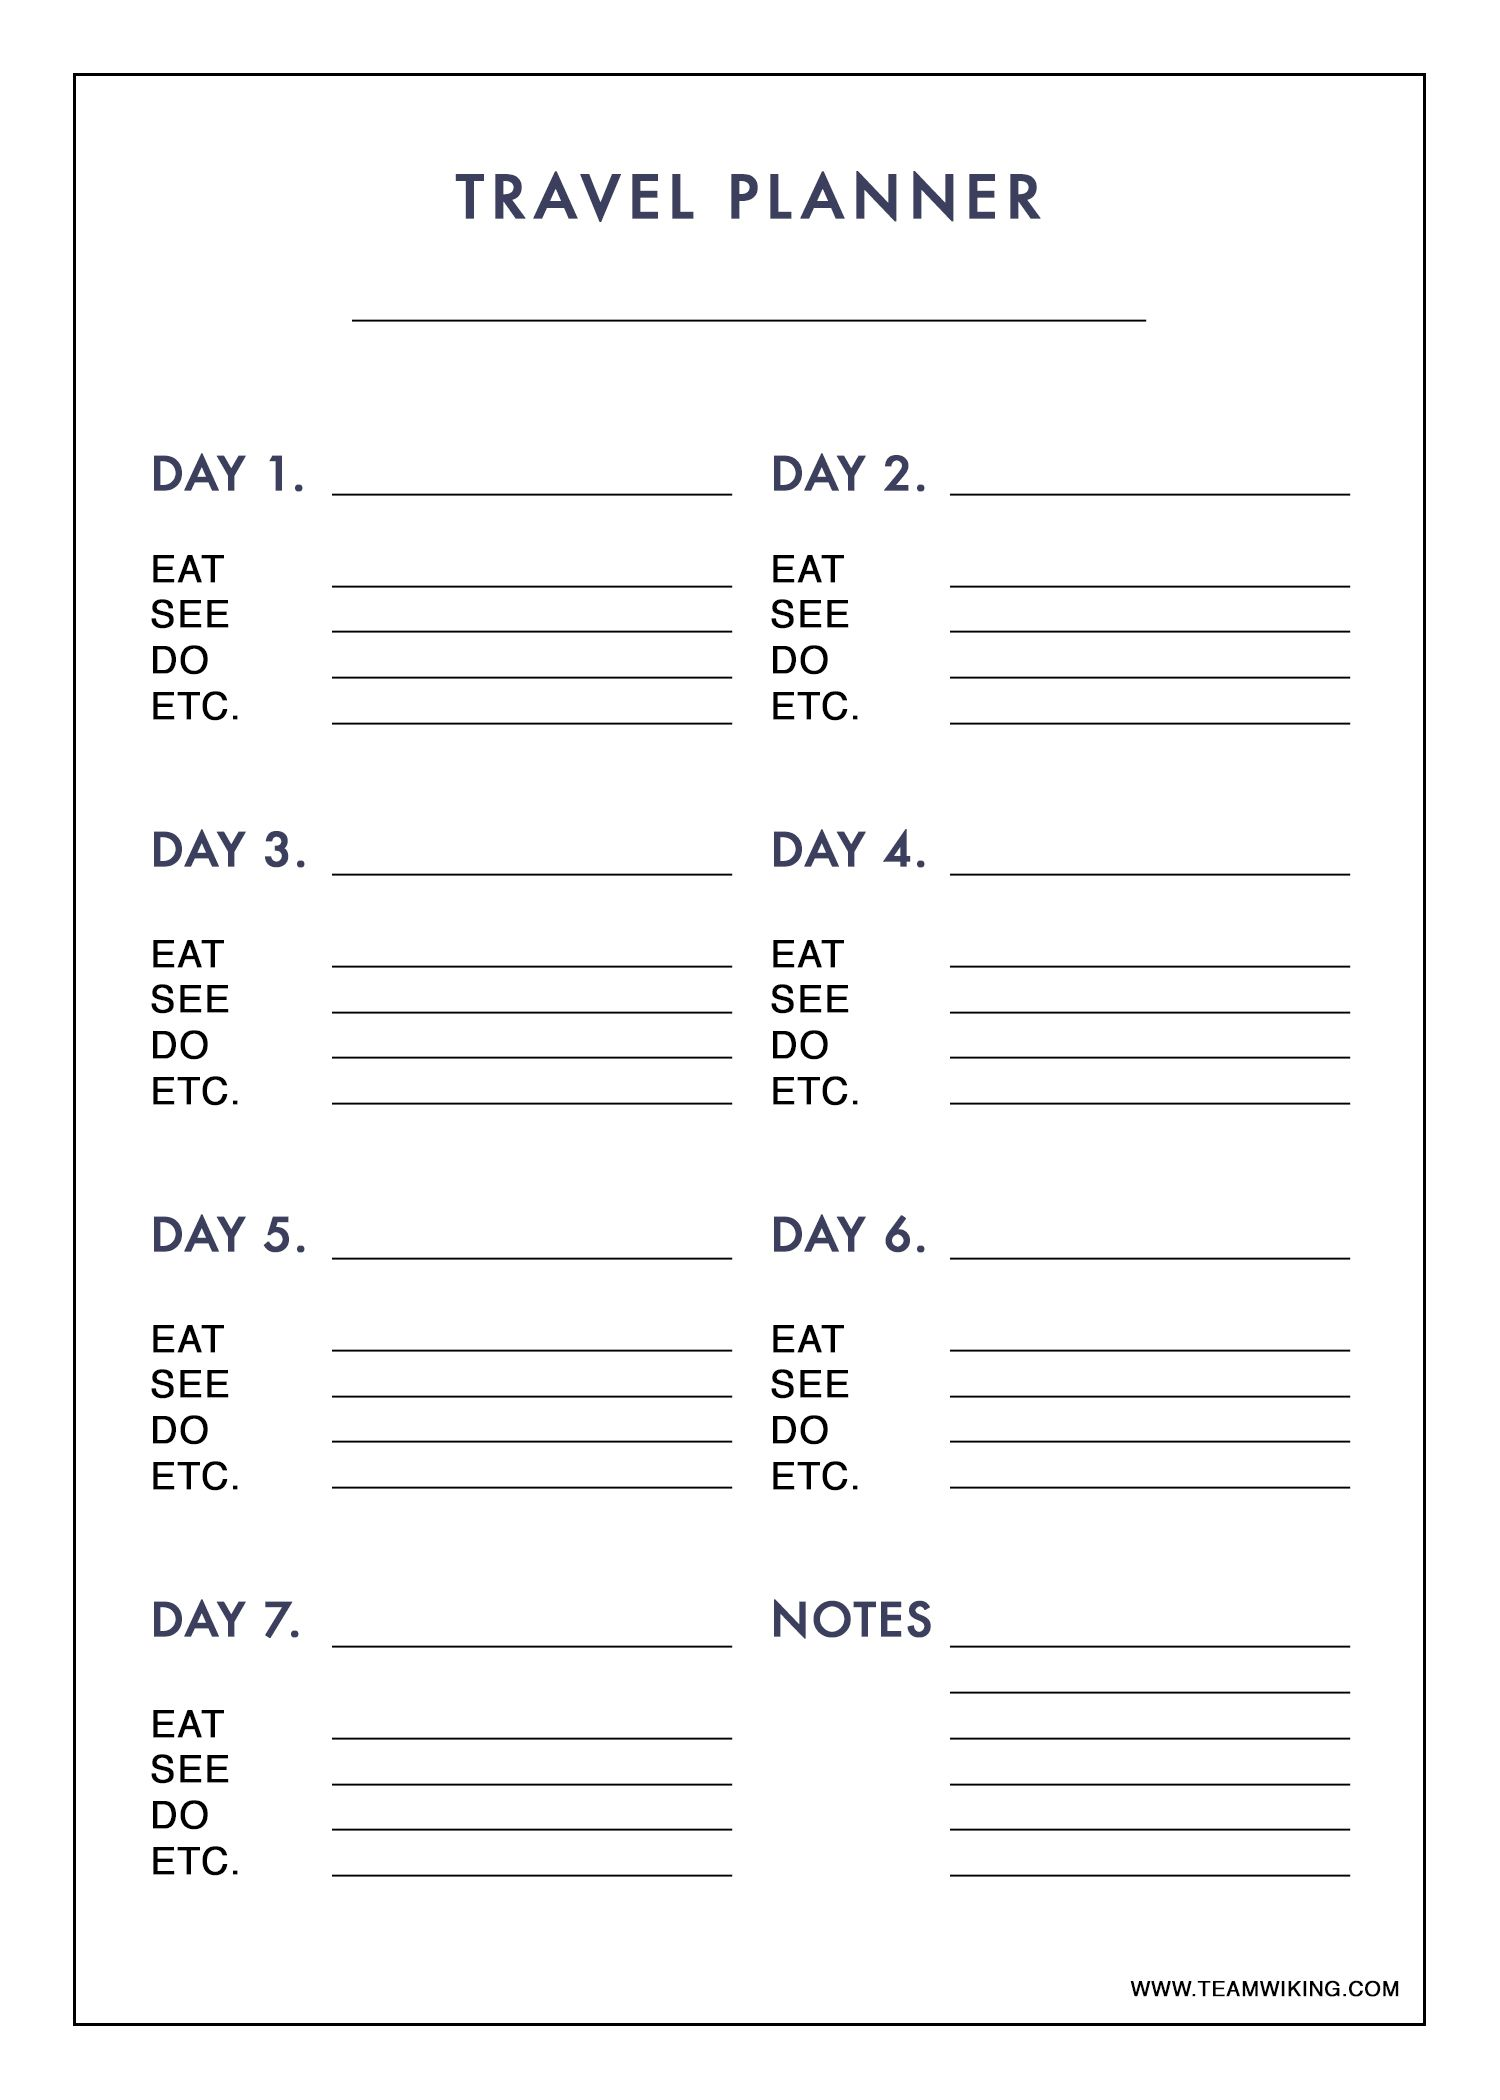 free printable 7 day travel planner use to plan outfits packing